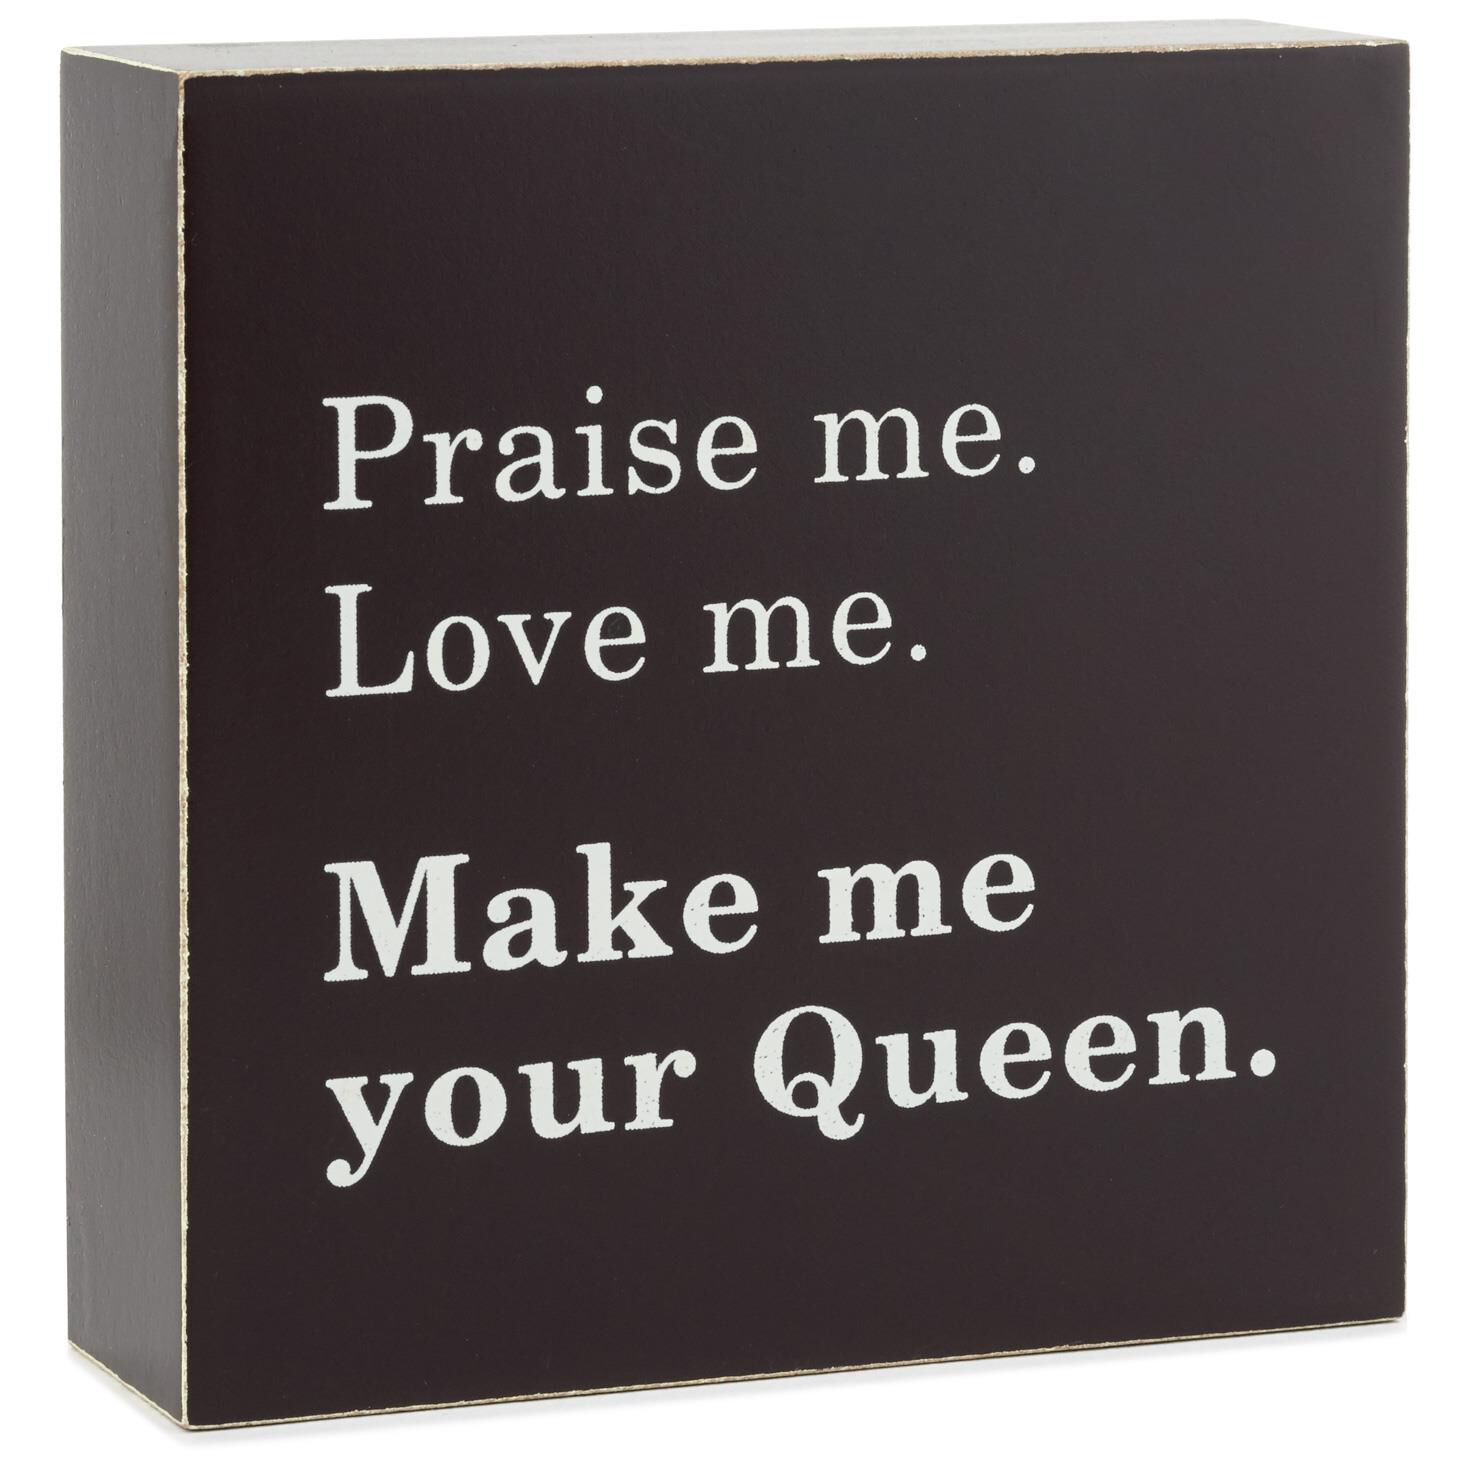 Make A Quote Make Me Your Queen Wood Quote Sign 4X4  Plaques & Signs  Hallmark